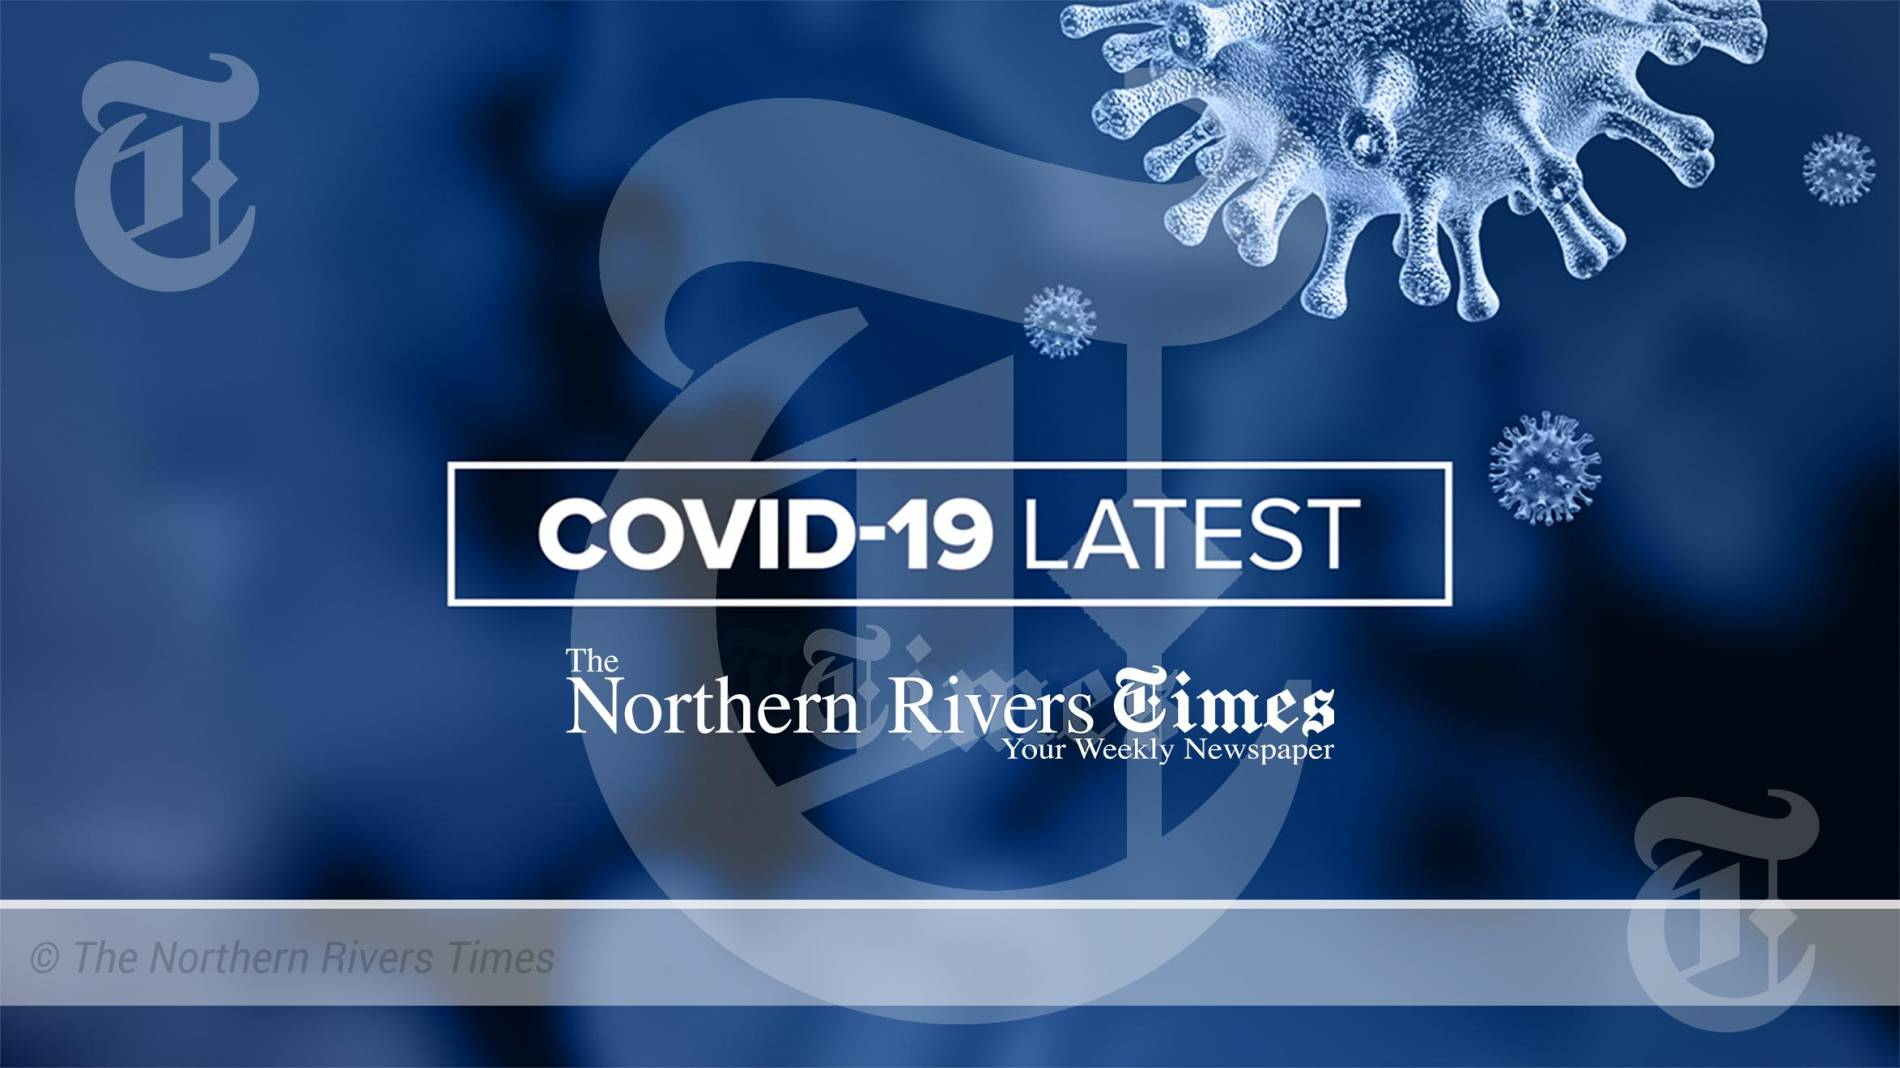 The NSW Northern Rivers Times COVID19 News Updates